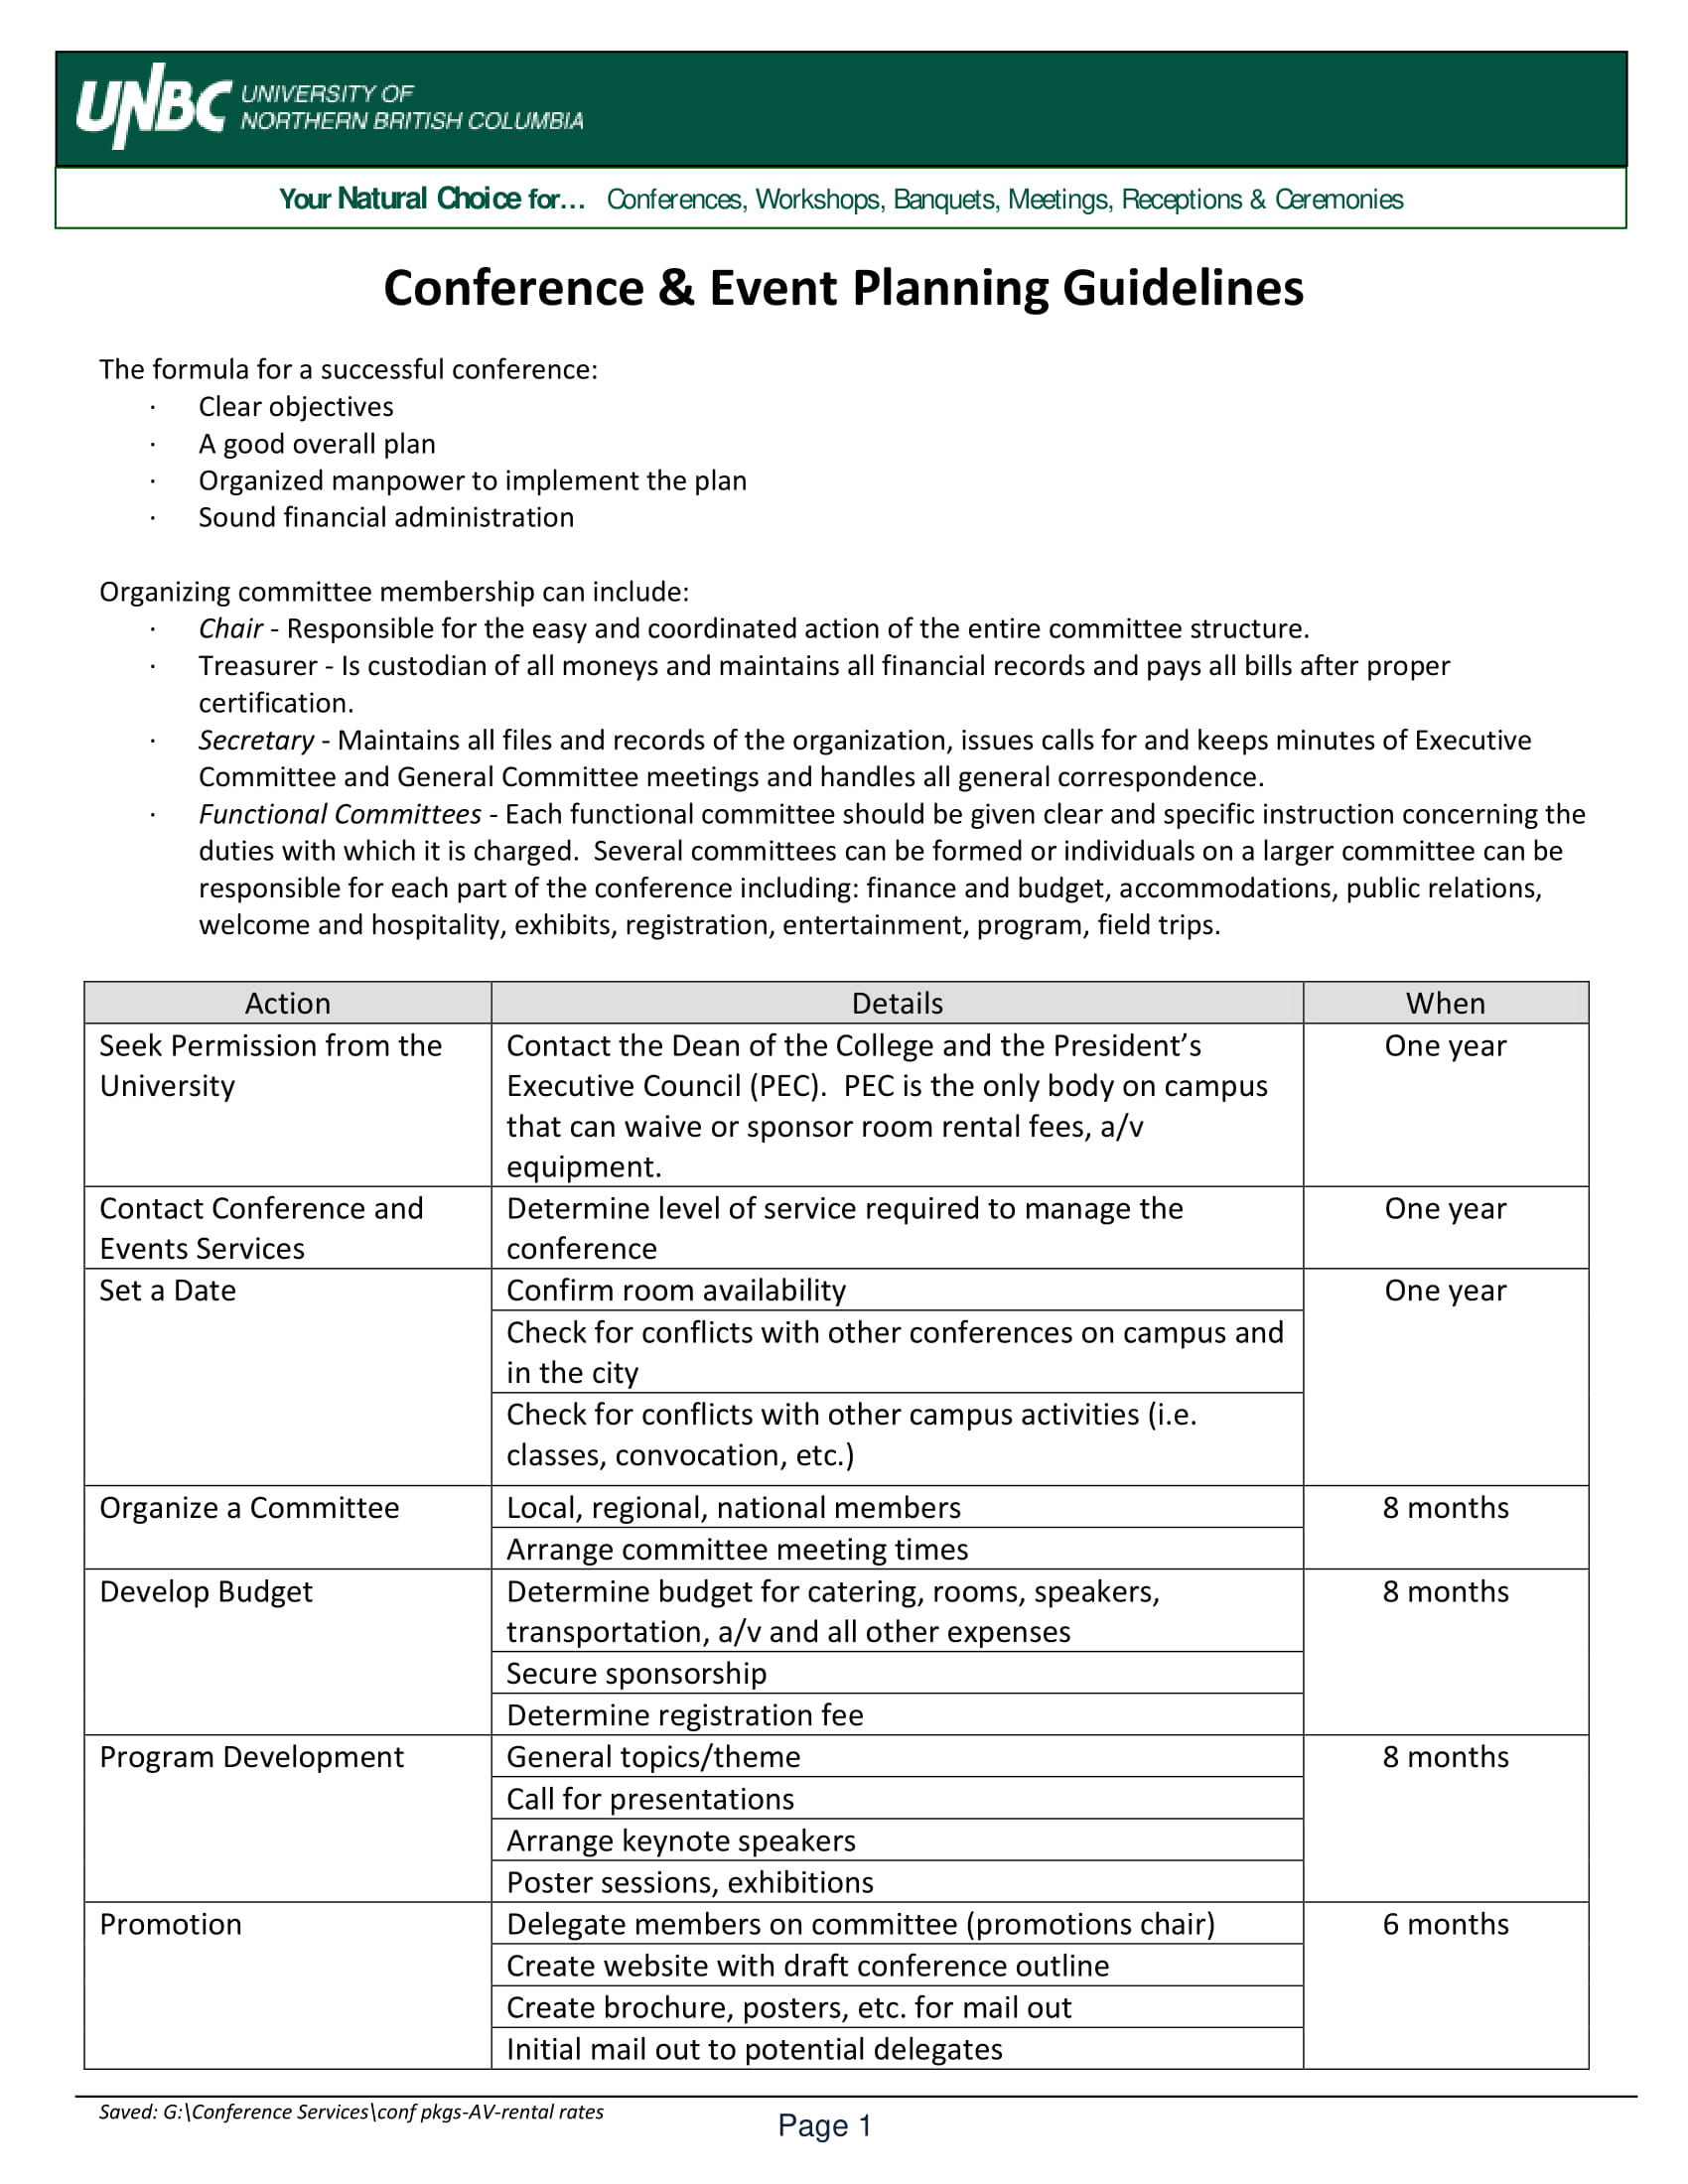 conference event planning guidelines example